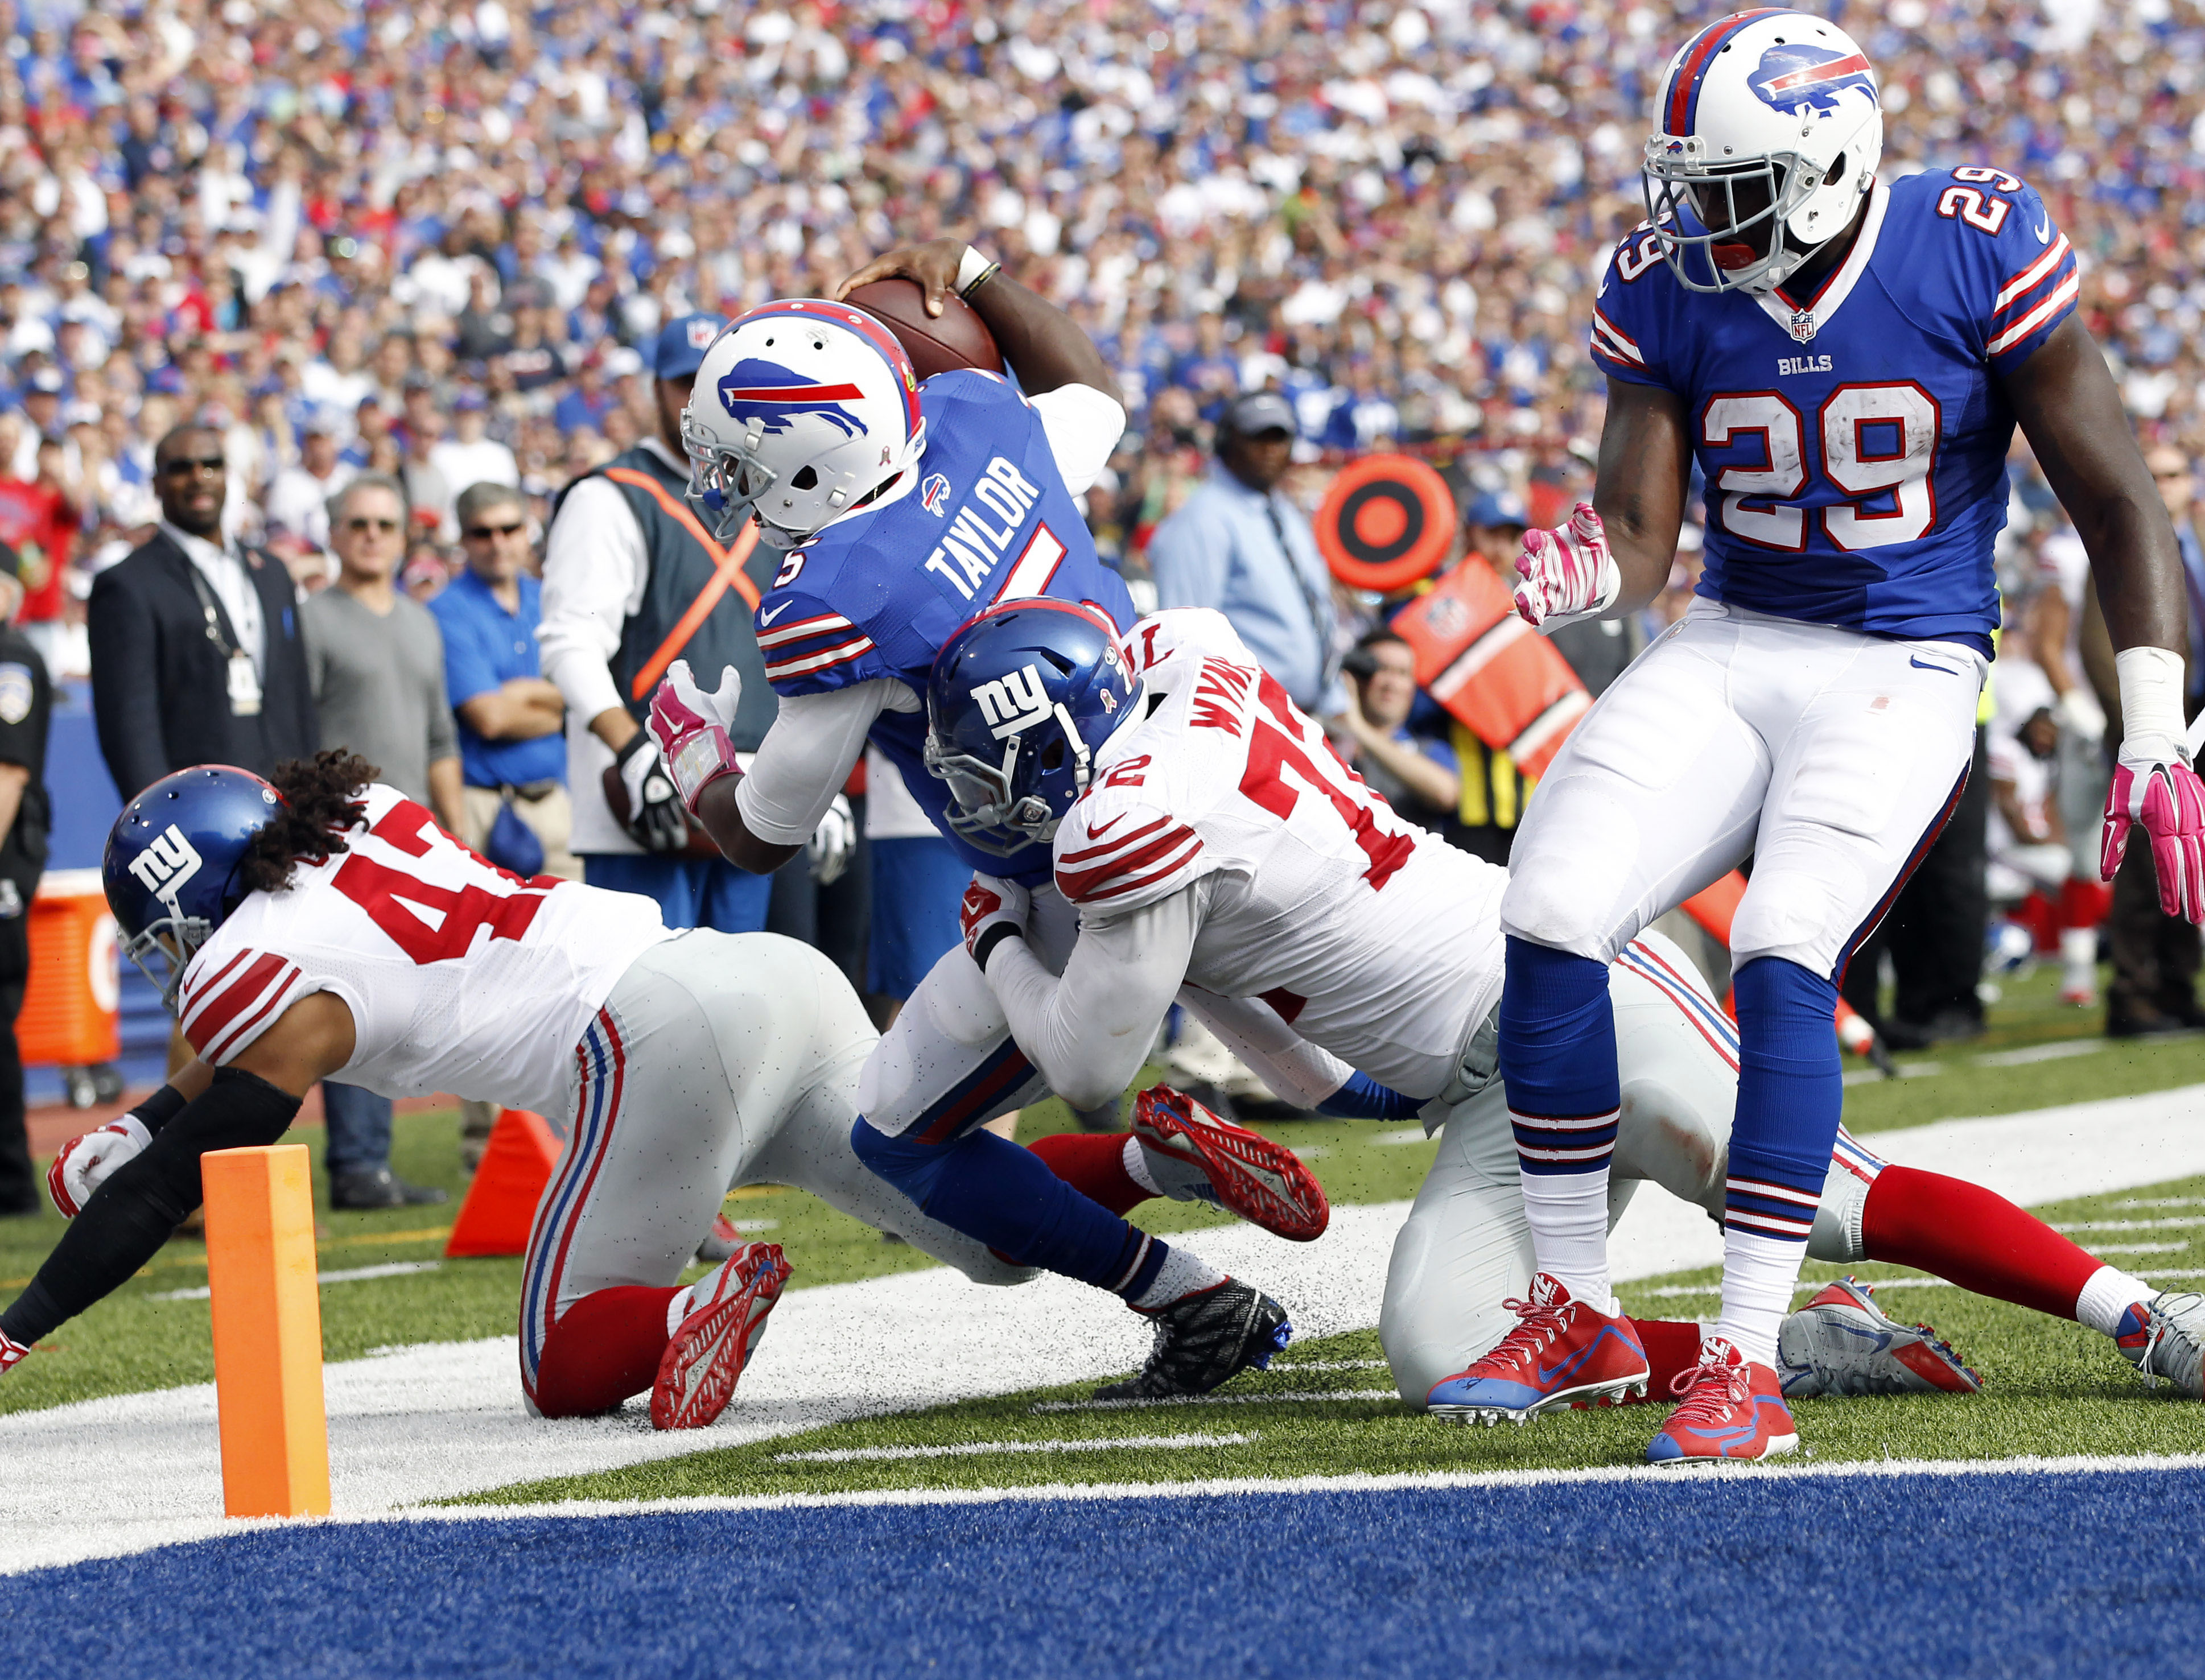 Are the Giants doing enough on defense?